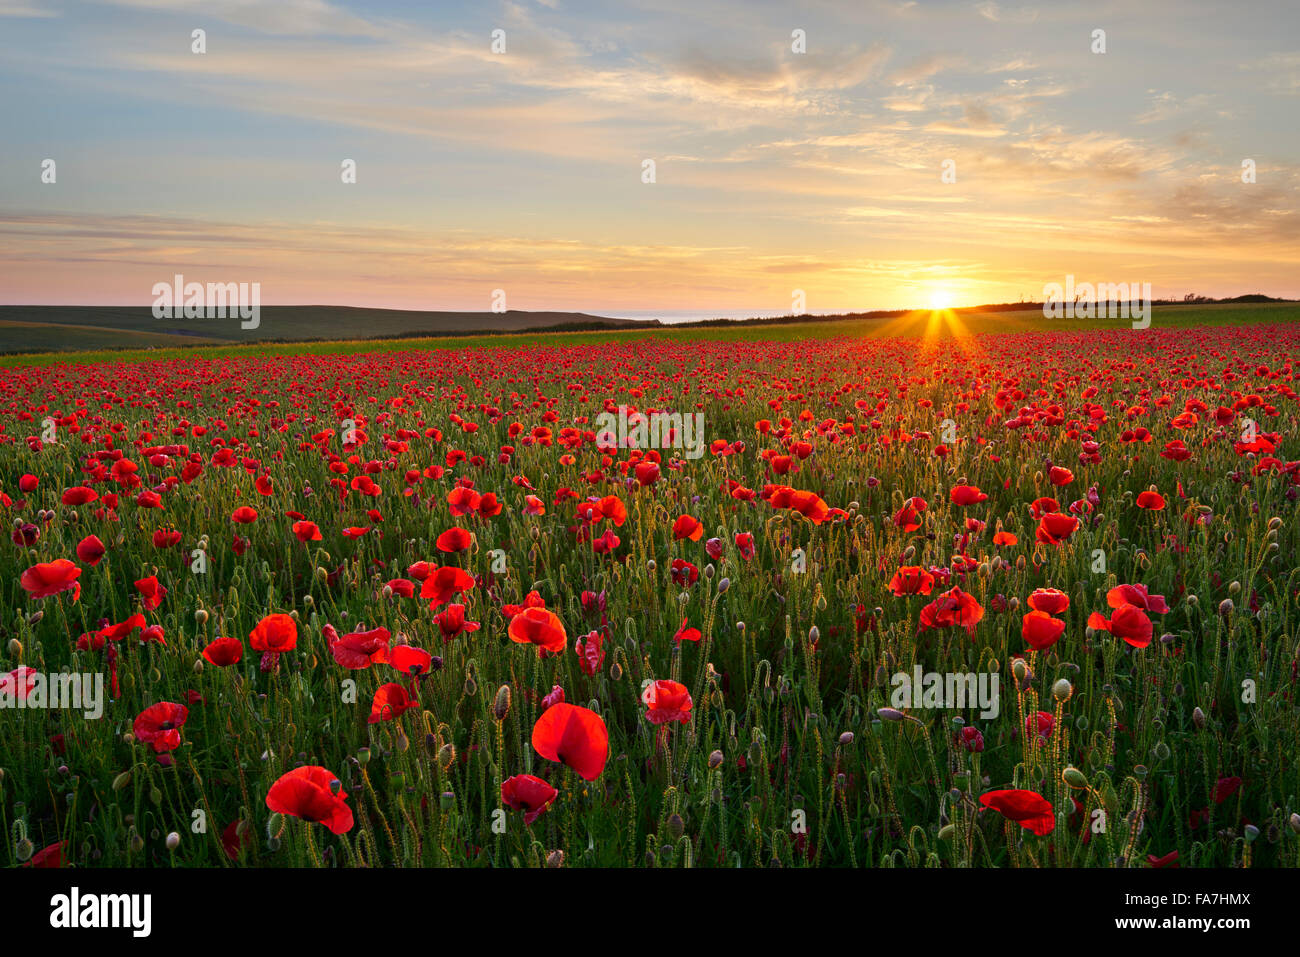 Champ de coquelicots en pleine floraison, Cornwall Photo Stock